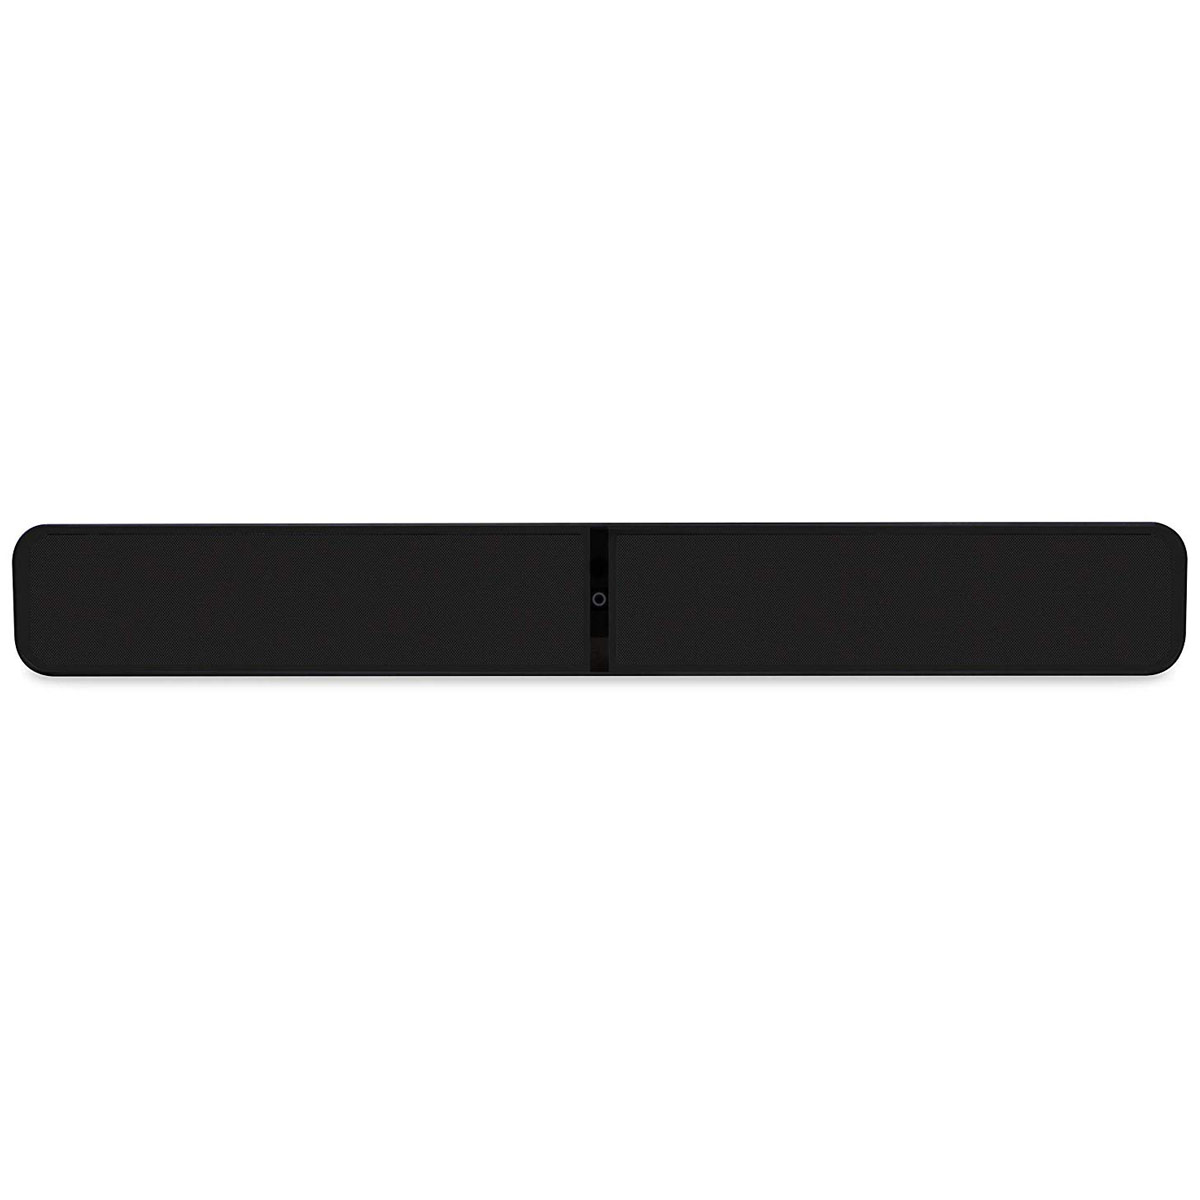 Barre de son Bluesound Pulse Soundbar 2i Noir Barre de son 120W Hi-Res Audio, multiroom, Wi-Fi AC, Ethernet, Bluetooth 5.0 aptX-HD compatible AirPlay 2 / Alexa